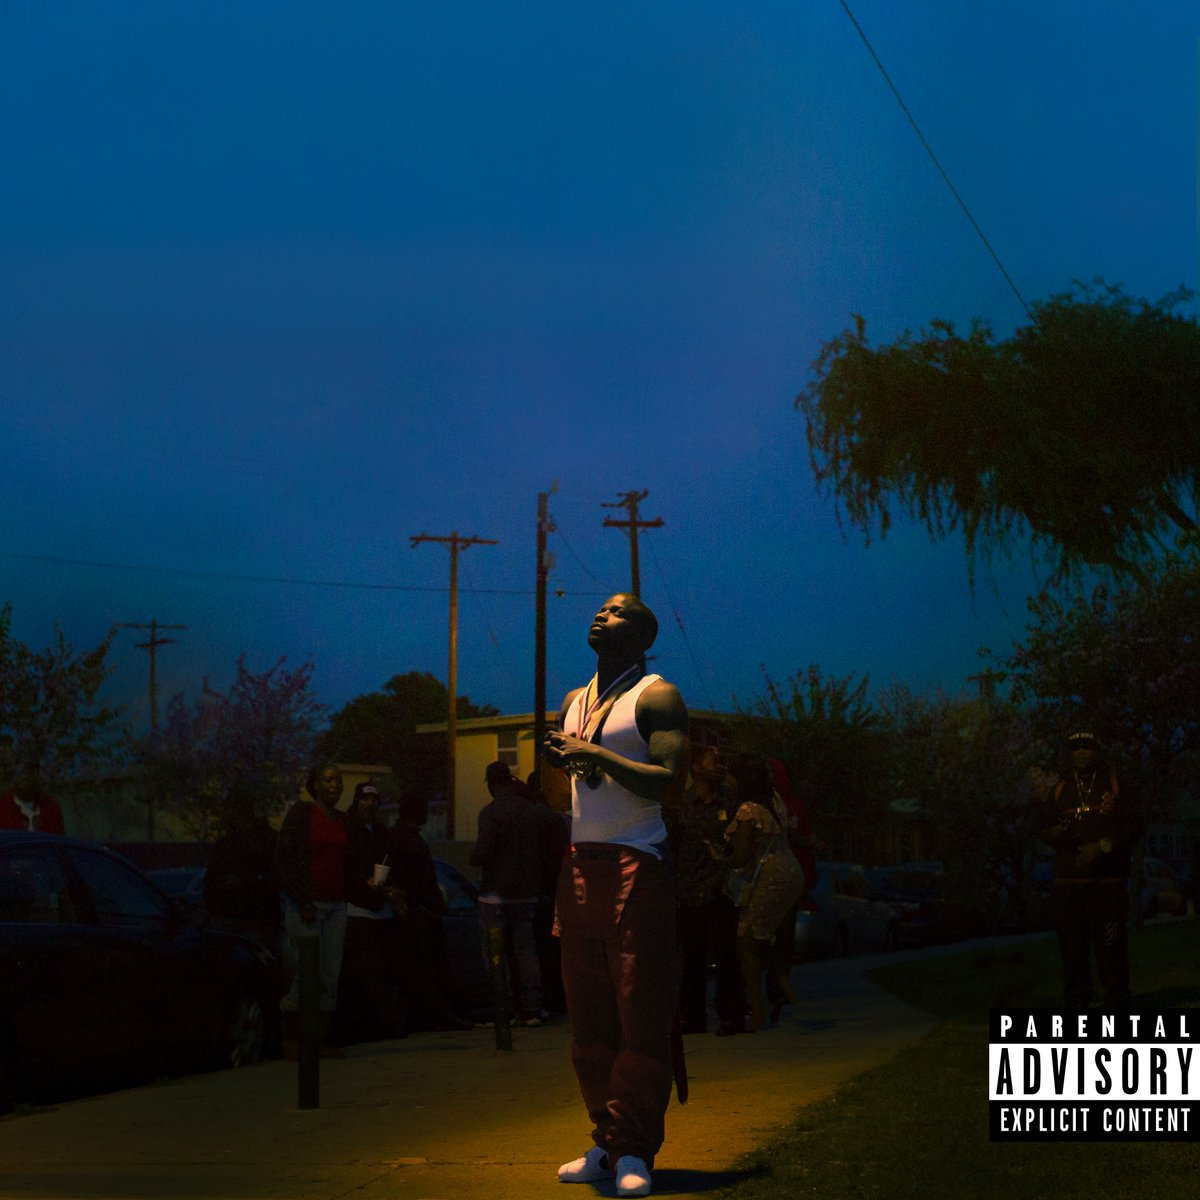 .@jayrock Announces New Album 'Redemption' & Release Date https://t.co/a2ohZjg6Em  https://t.co/ASogaXXzHl